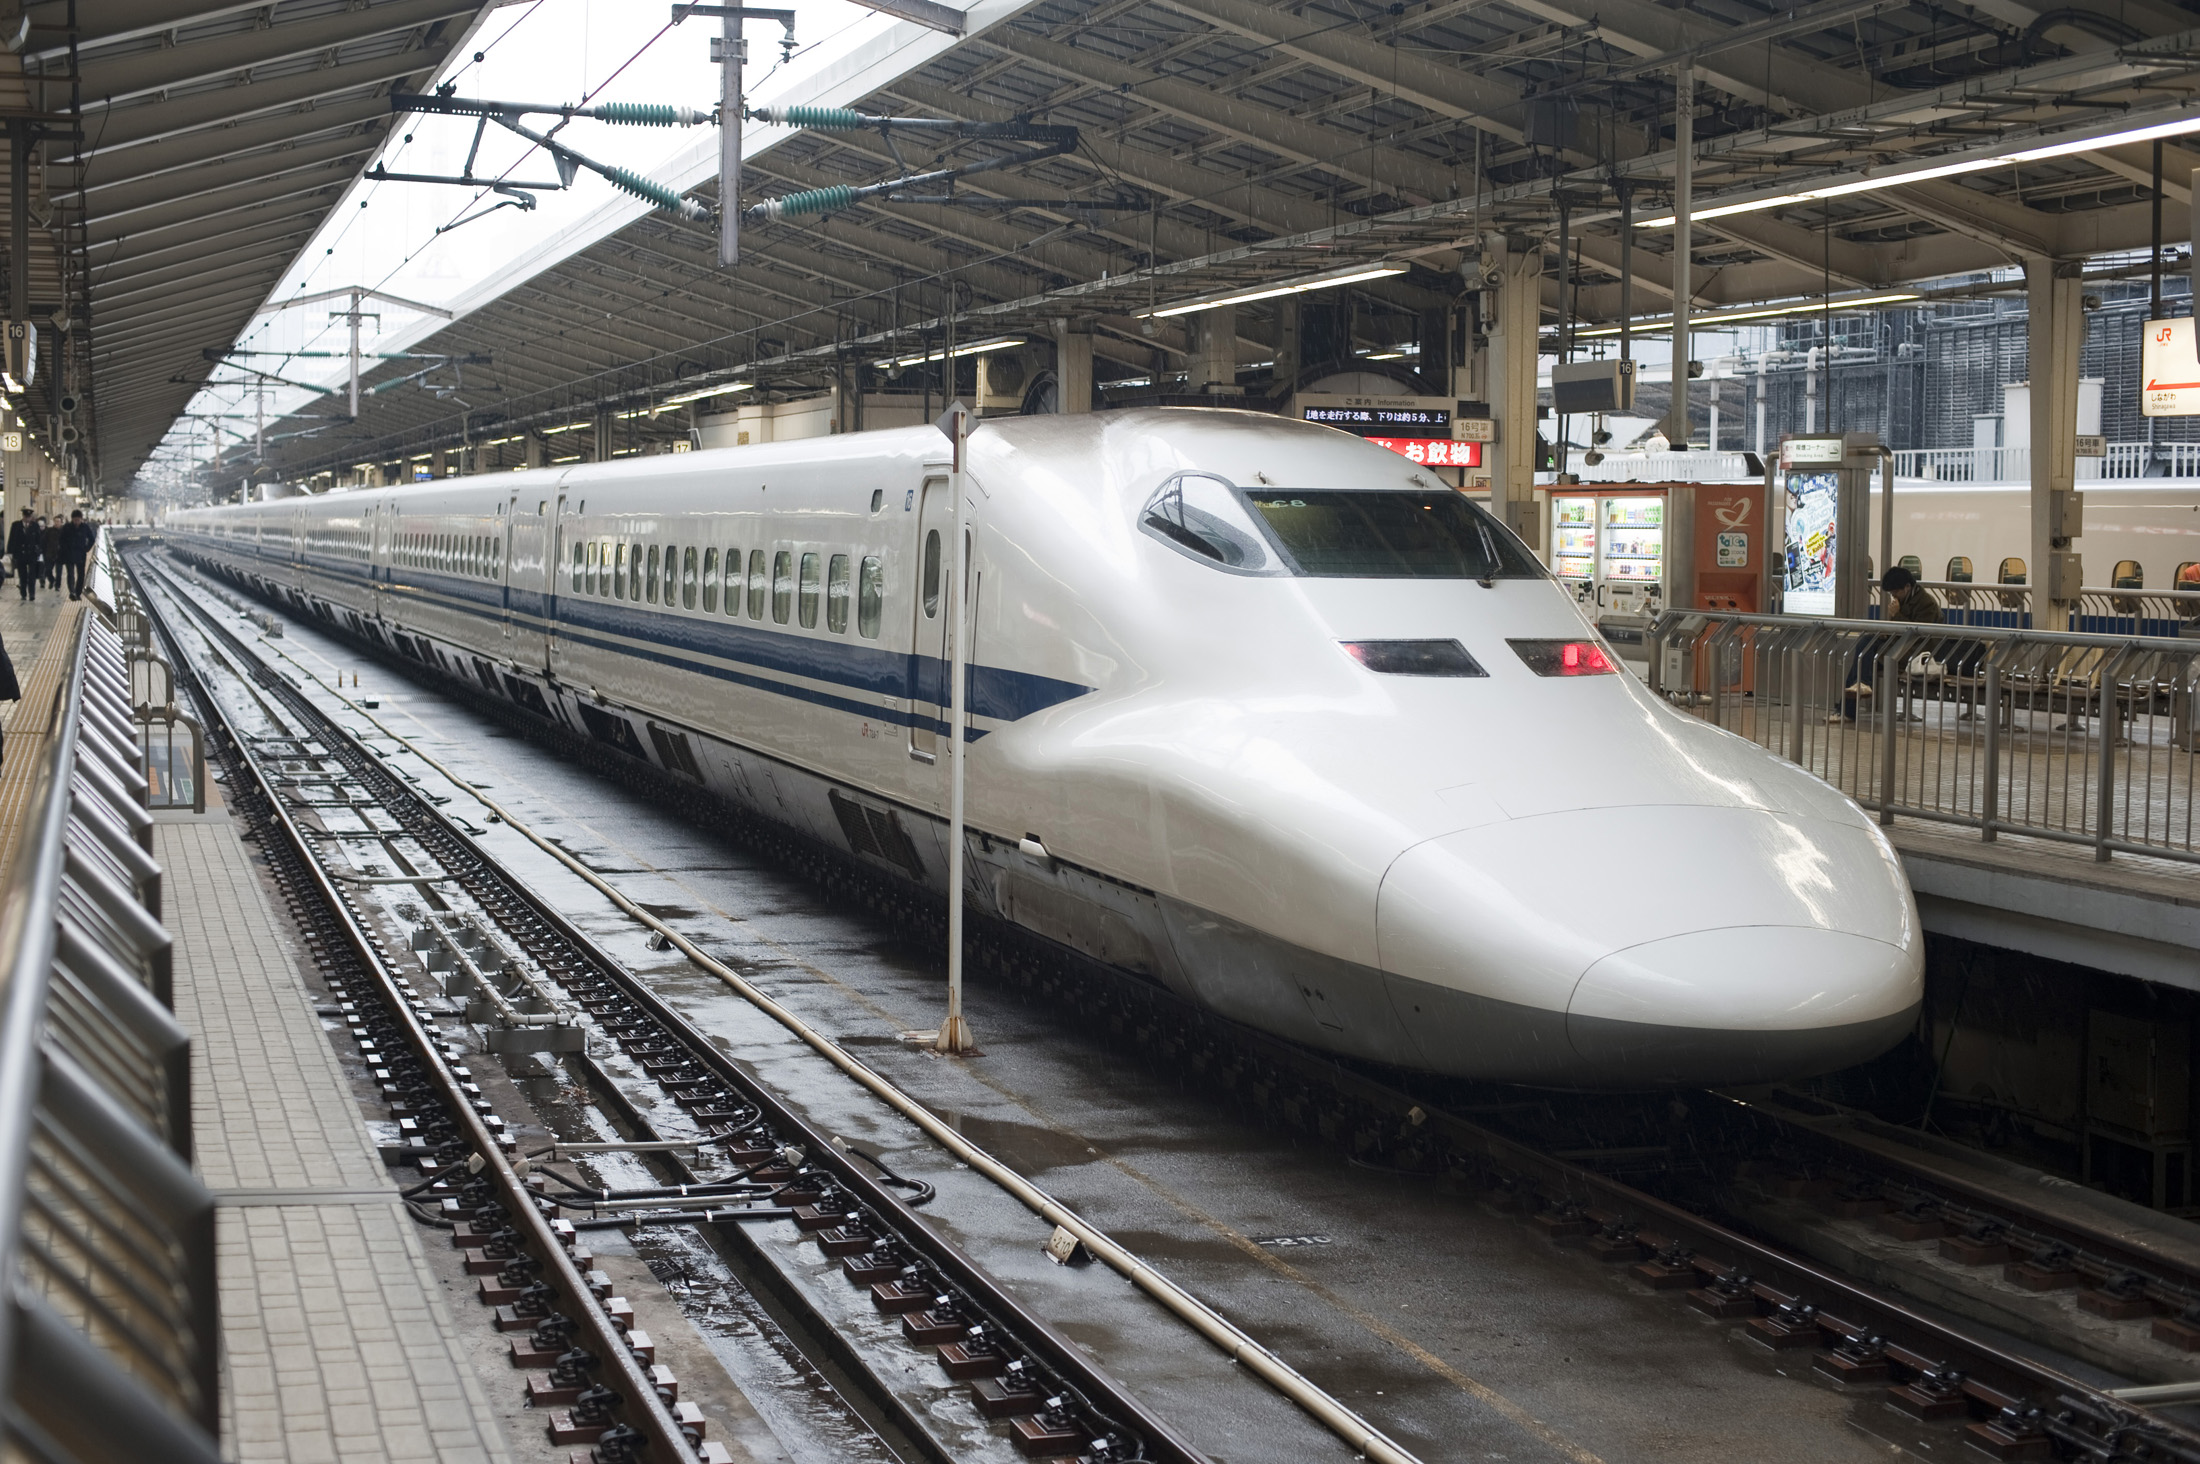 Free Stock photo of Bullet train | Photoeverywhere